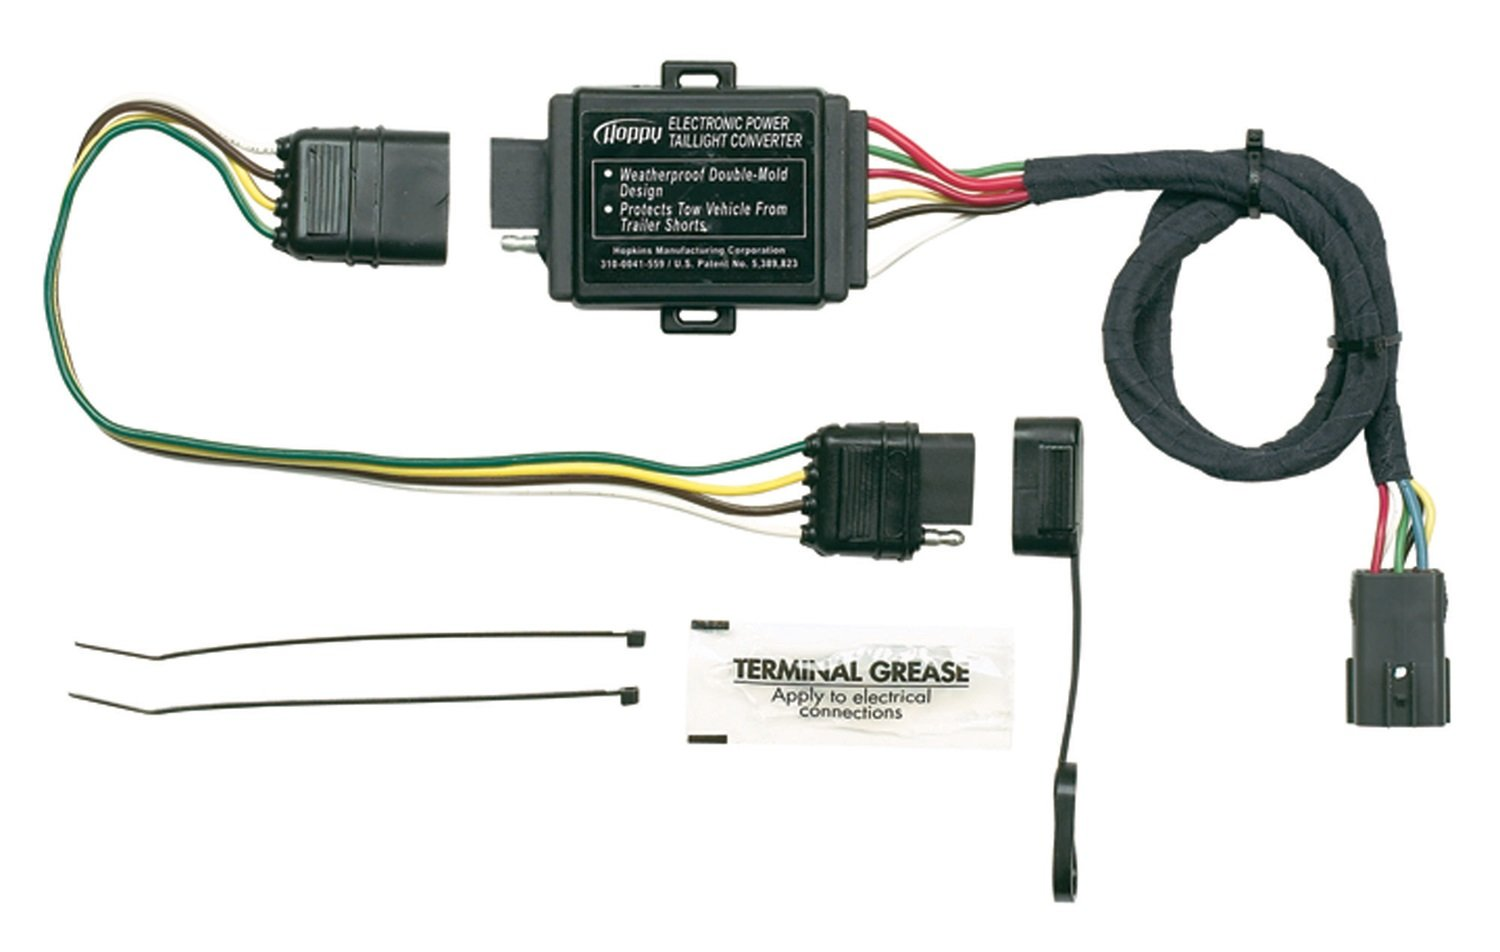 61dKvjPegbL._SL1500_ amazon com hopkins 11143875 plug in simple vehicle to trailer universal trailer wiring harness at gsmx.co